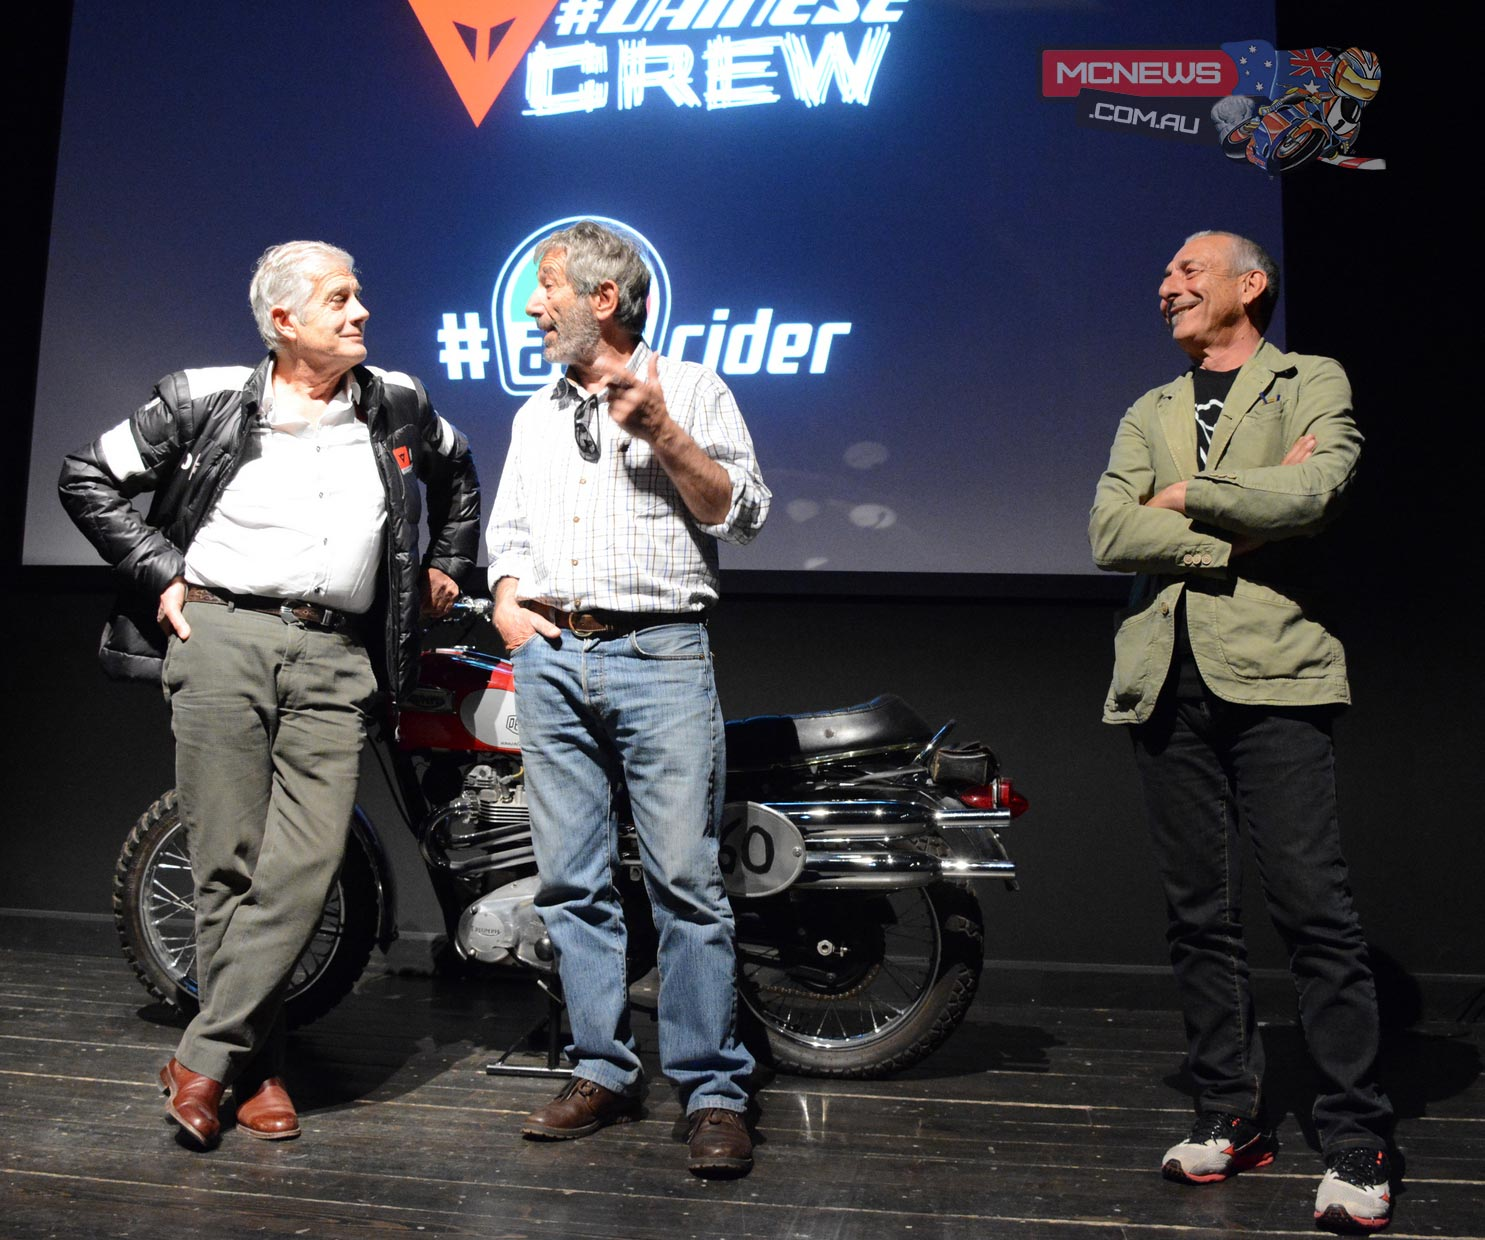 The 15 times World Champion Giacomo Agostini and Marco Lucchinelli this week presented the fifth episode of the Dainese webseries at the Deus Café in Milan entitled Old Dogs.